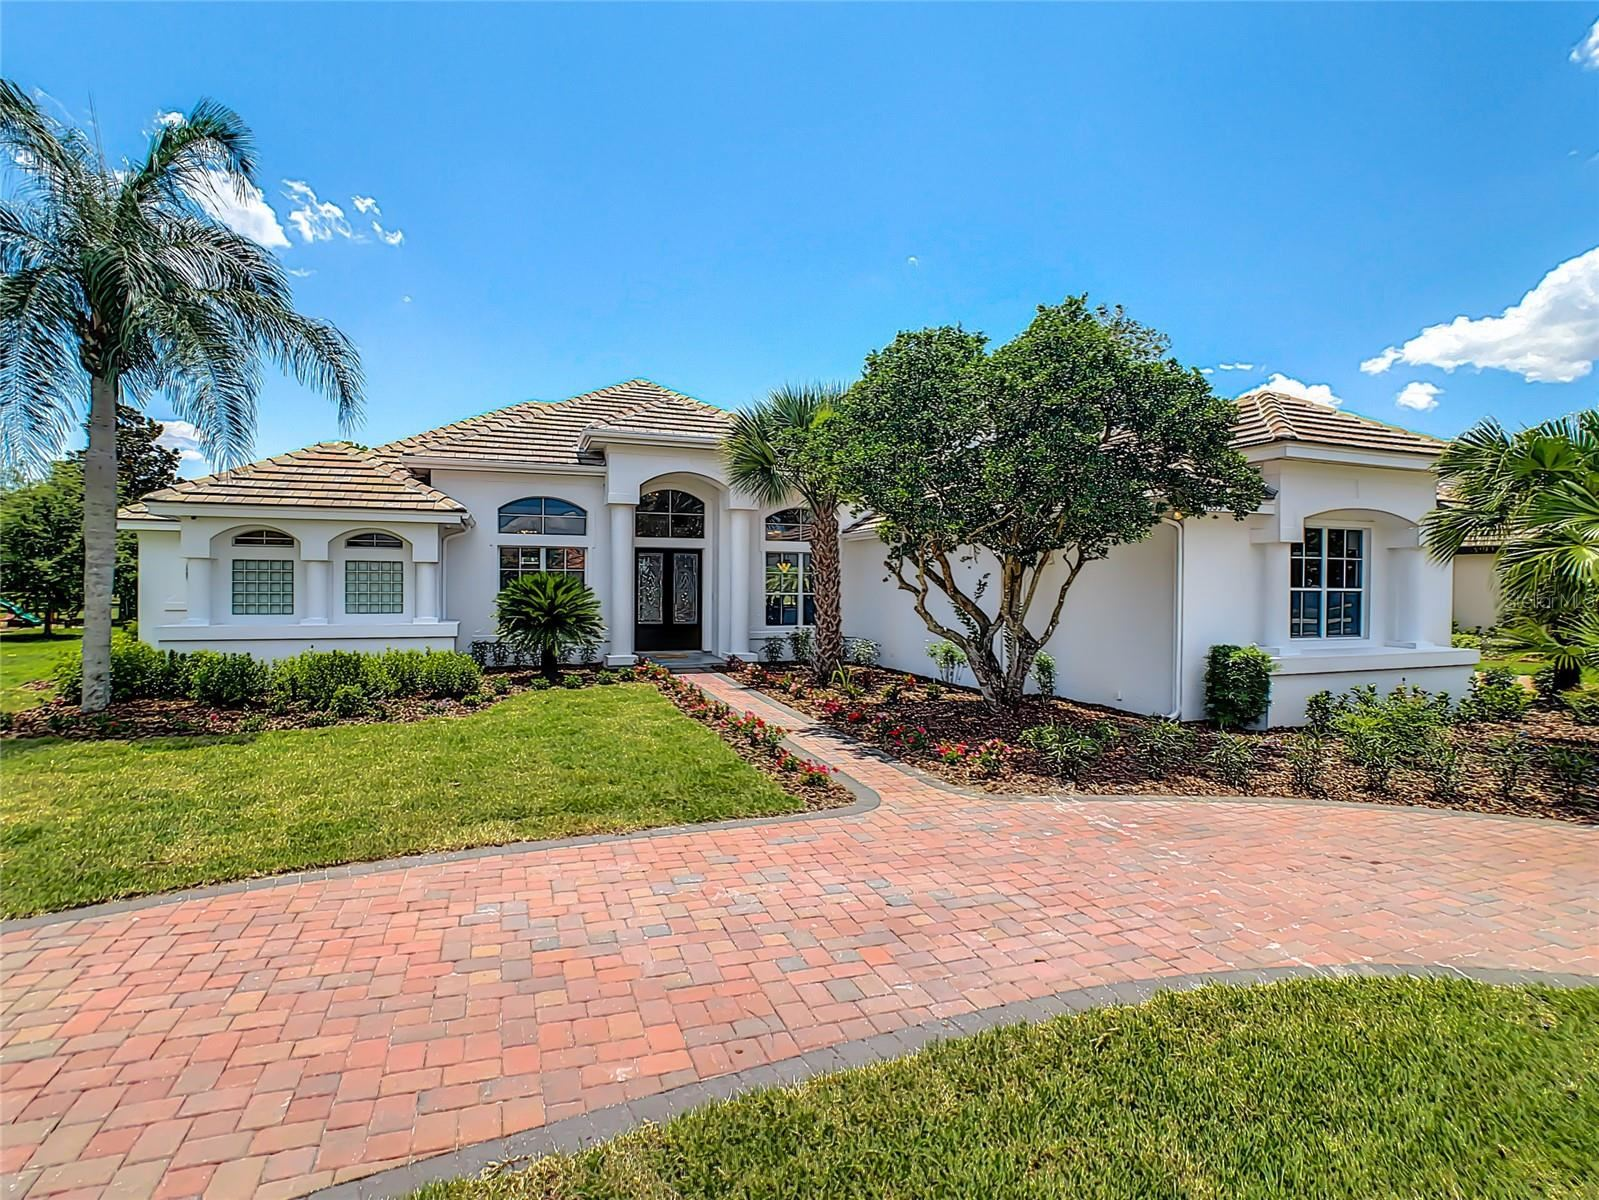 11555 WILLOW GARDENS DRIVE, Windermere, FL 34786 - #: O5946547